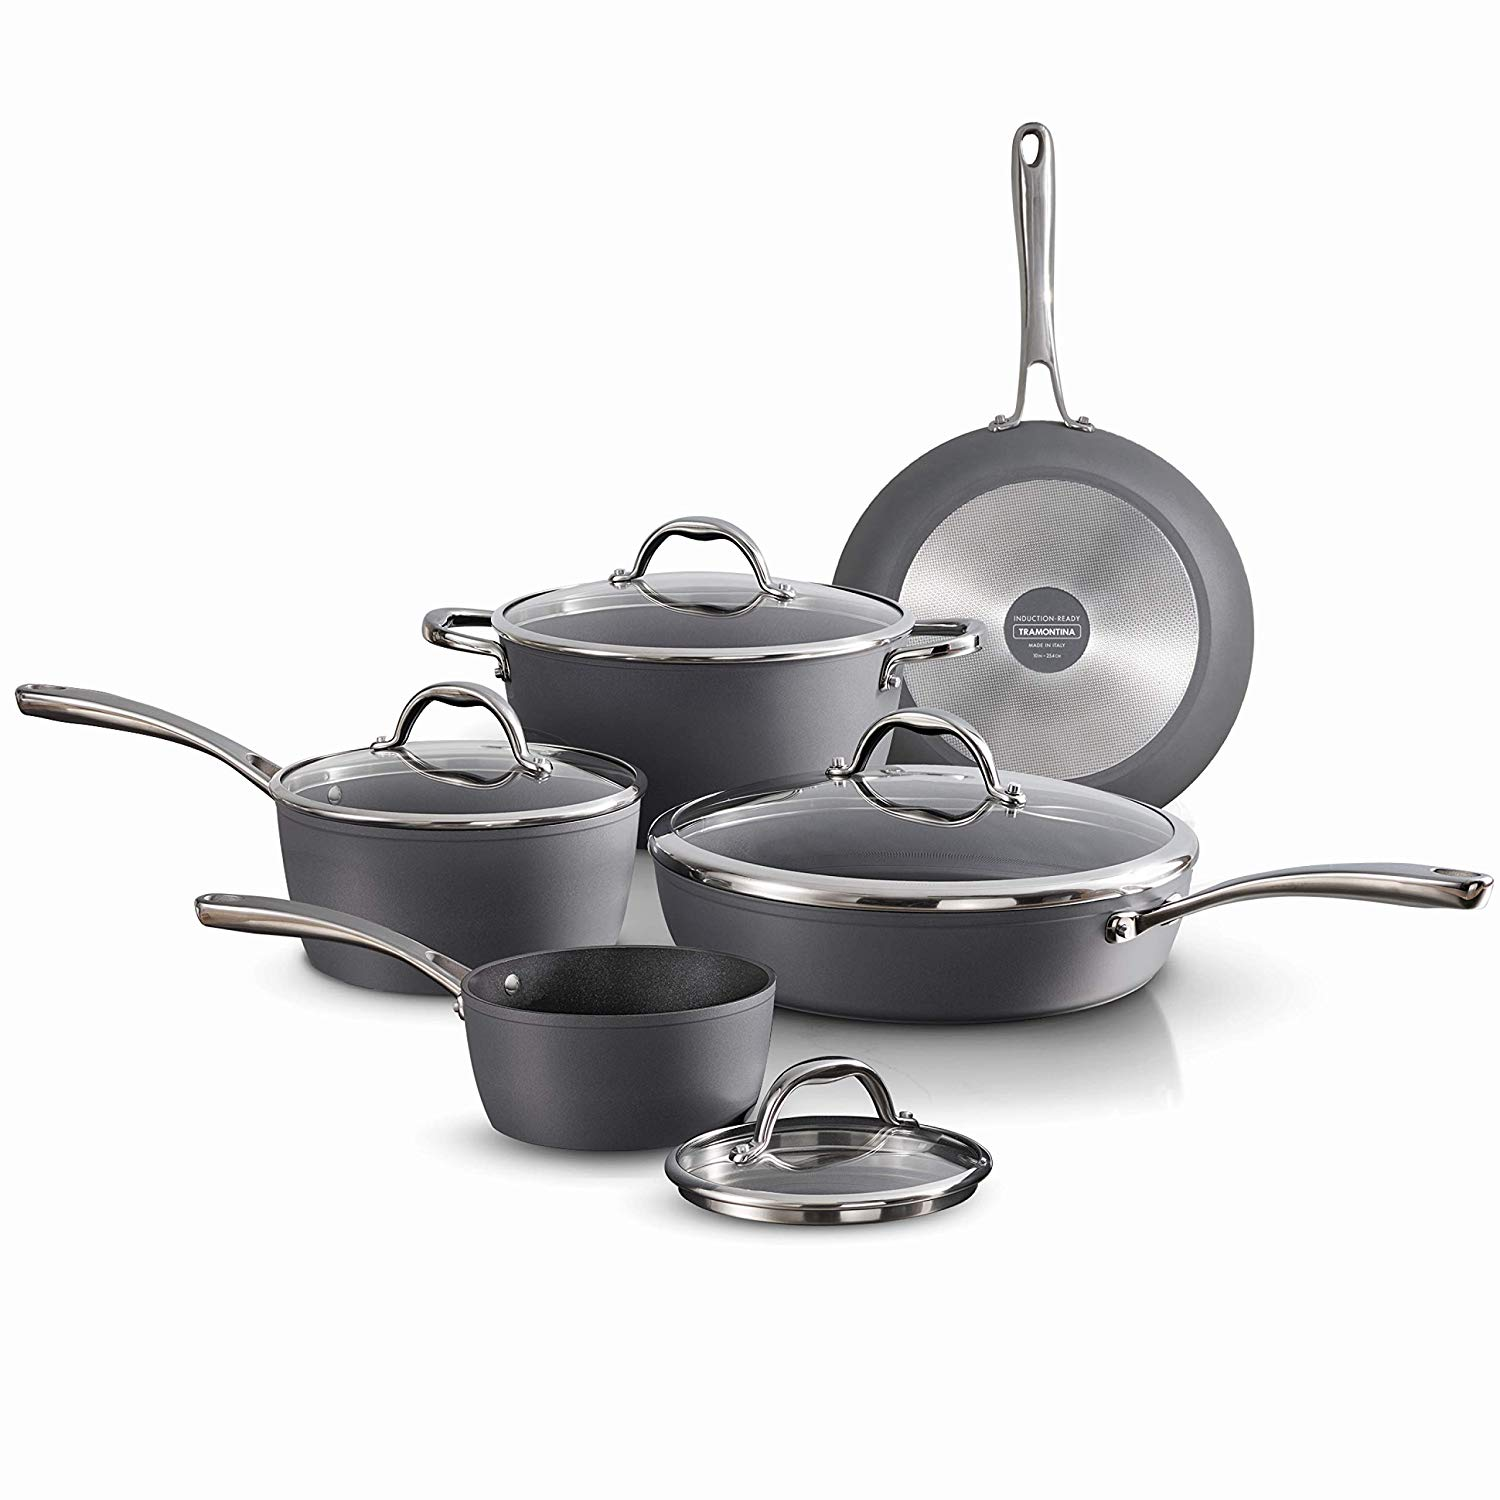 Tramontina 80110/225DS Gourmet Induction Aluminum Nonstick Made in Italy, Slate Gray 9-Piece Cookware Set